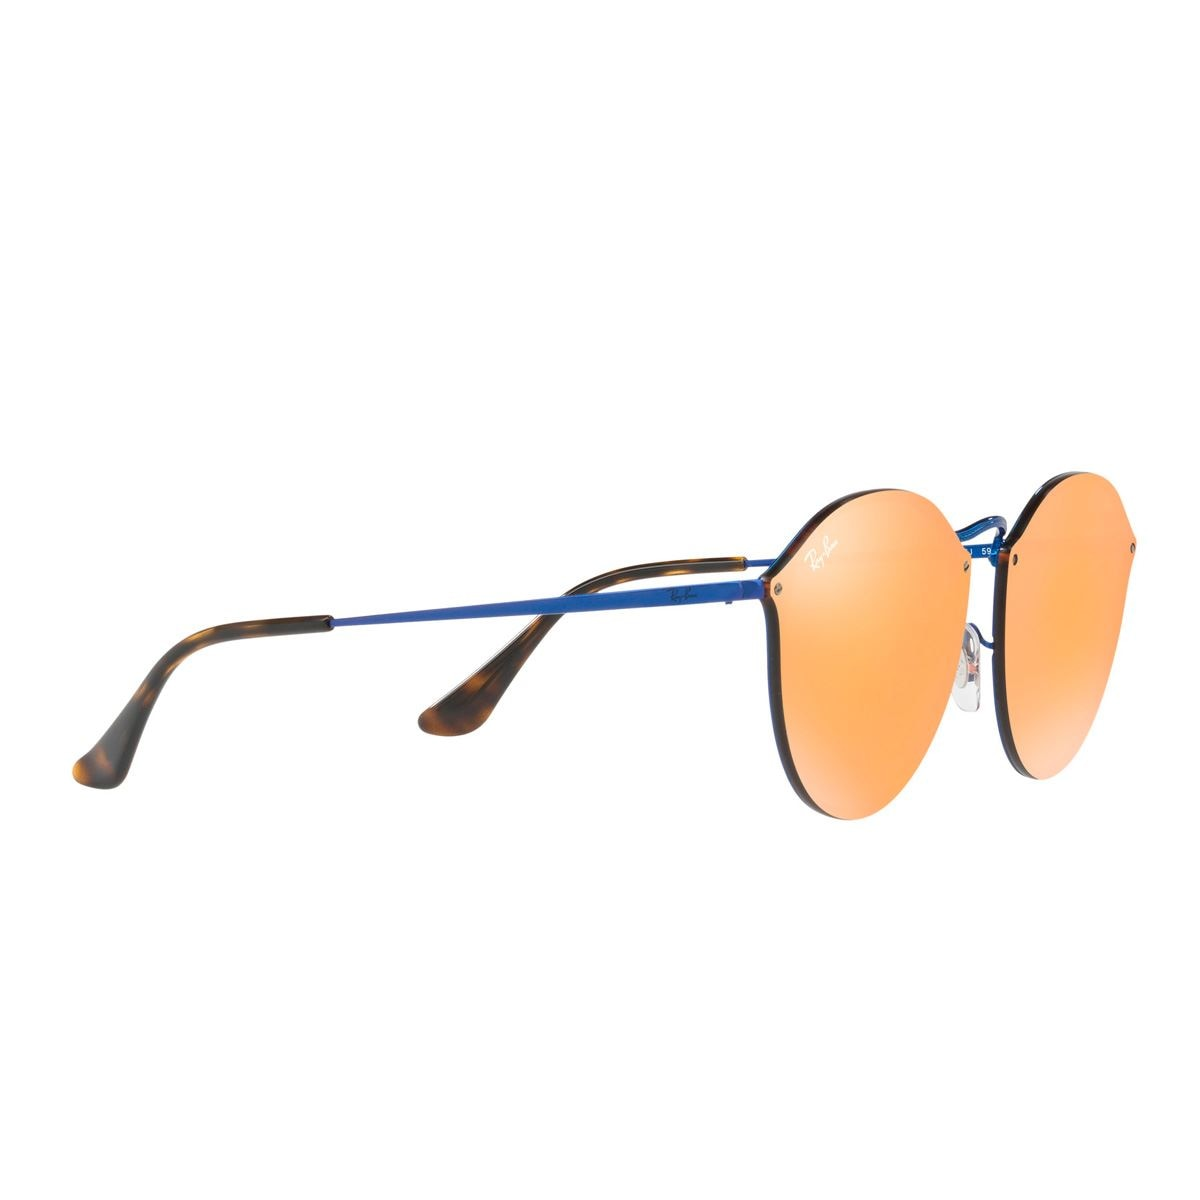 Solar ray-ban 0rb3574n 90387j u  - Sanborns